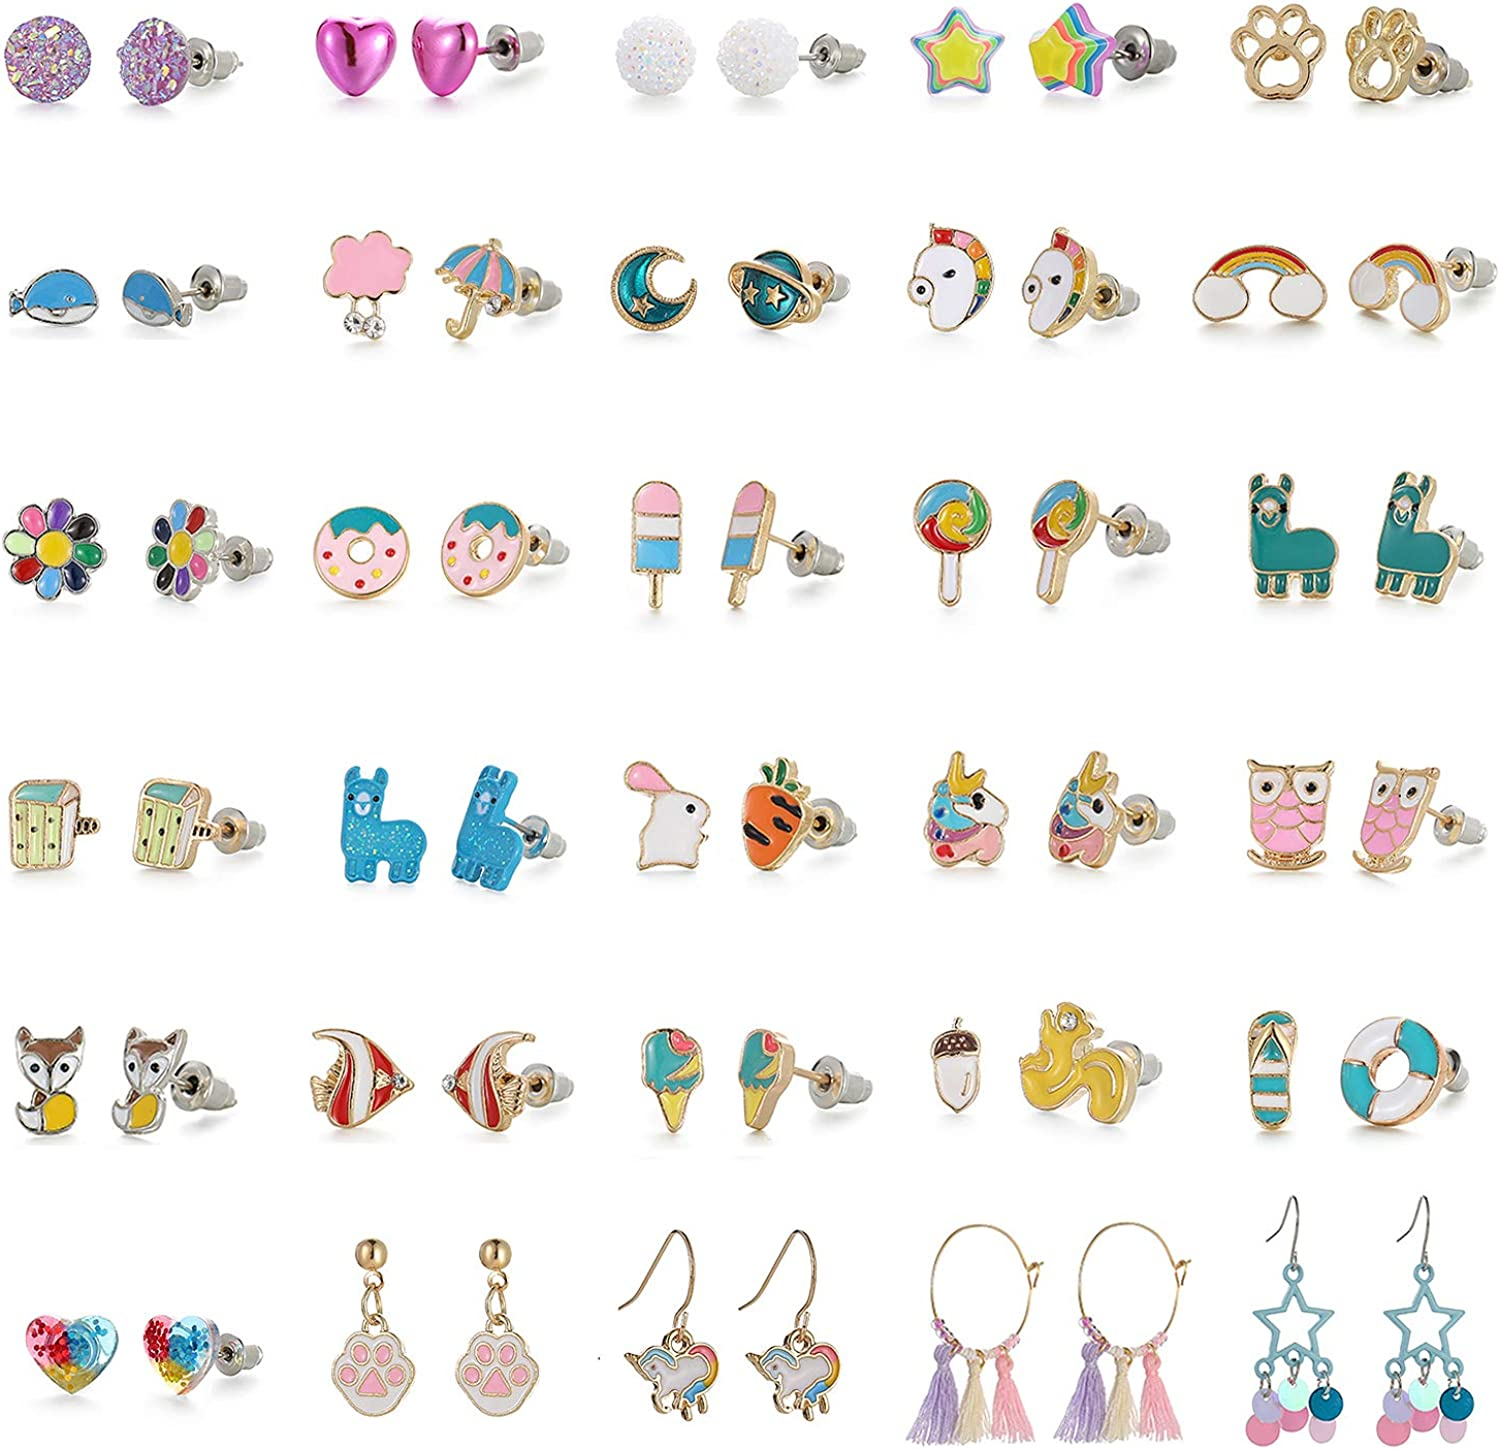 Hypoallergenic Earrings for Girls Kids, Colorful Stud Earrings, Animal Alpaca Rainbow Unicorn Cute Earring Jewelry Set Gifts for Girls Kids Women